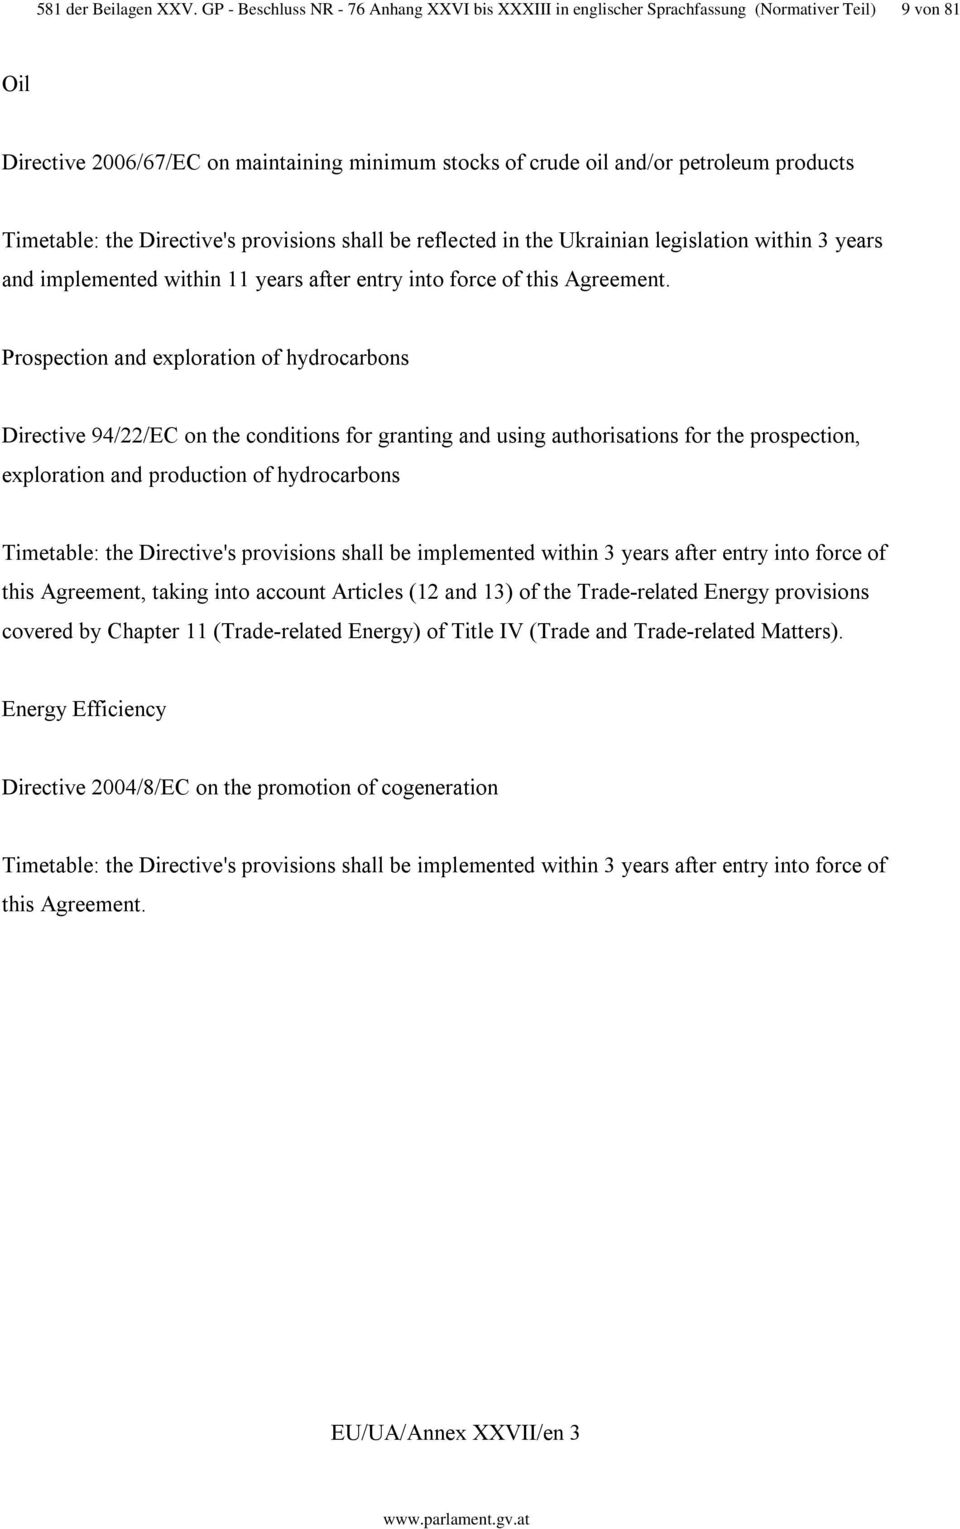 exploration and production of hydrocarbons Timetable: the Directive's provisions shall be implemented within 3 years after entry into force of this Agreement, taking into account Articles (12 and 13)